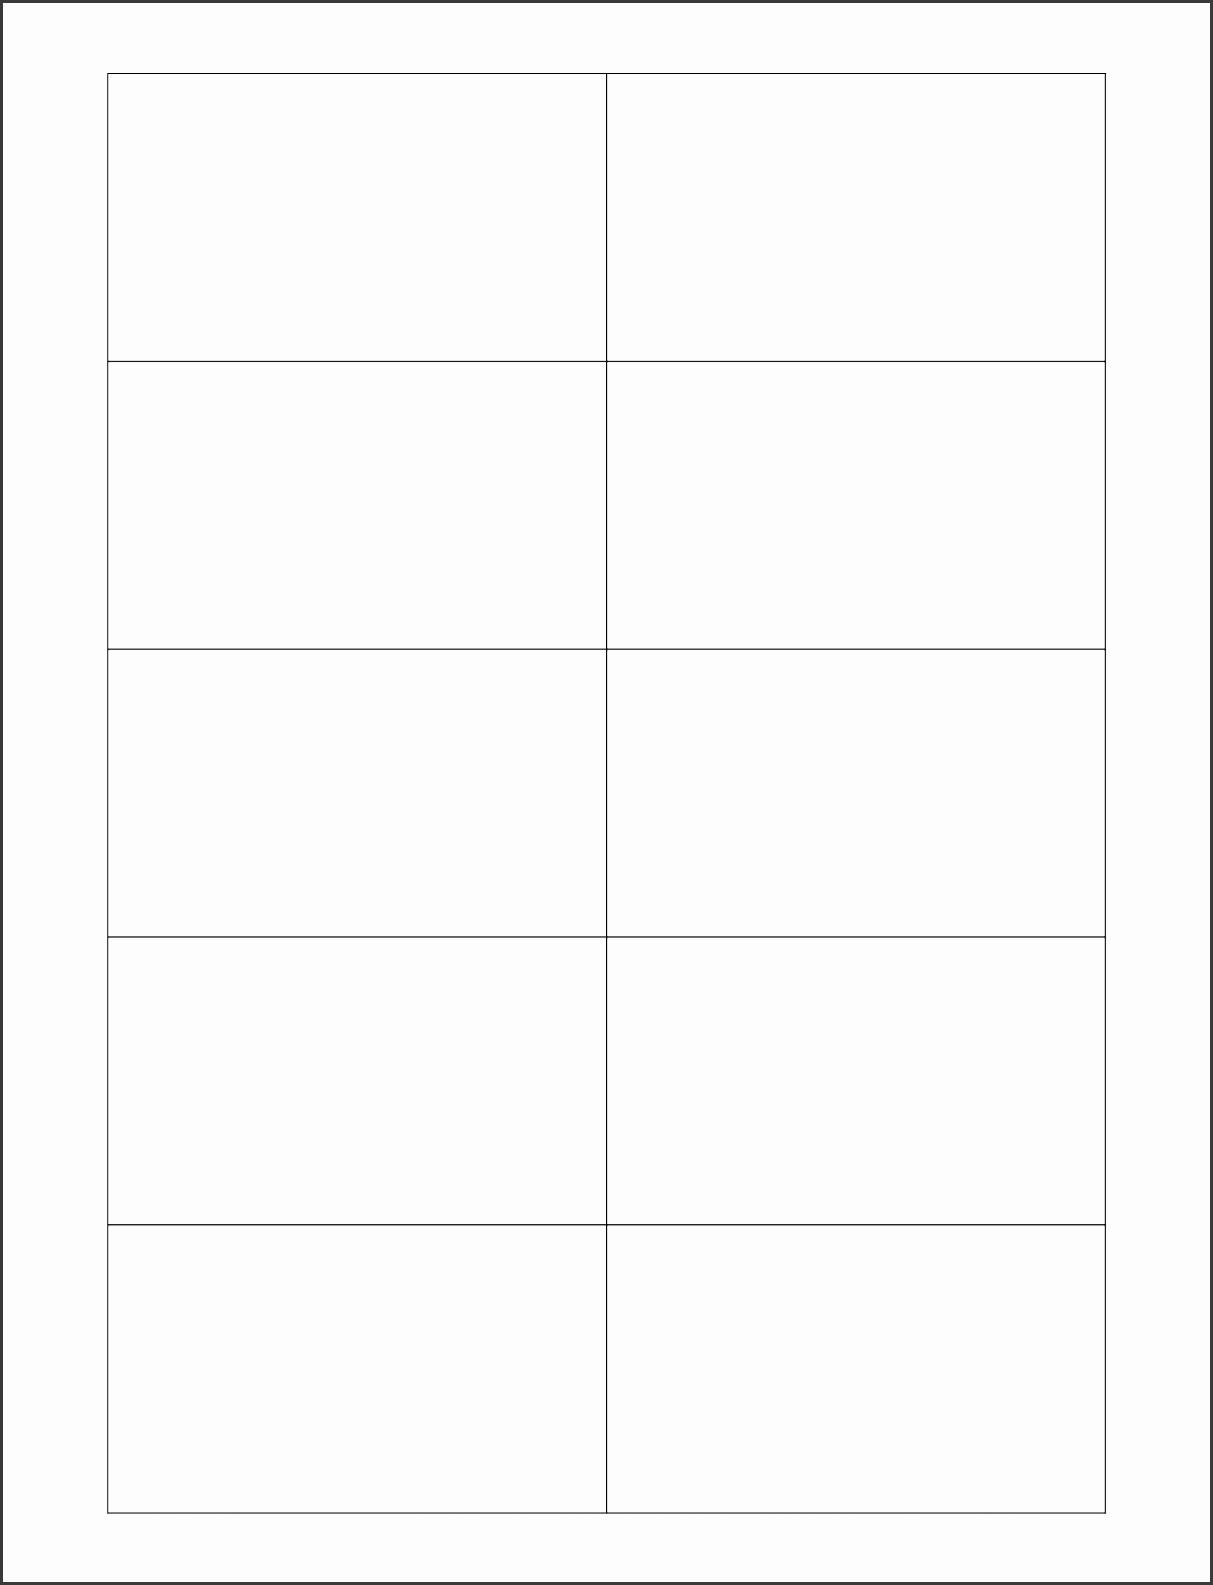 6 blank business card template wordreport template document